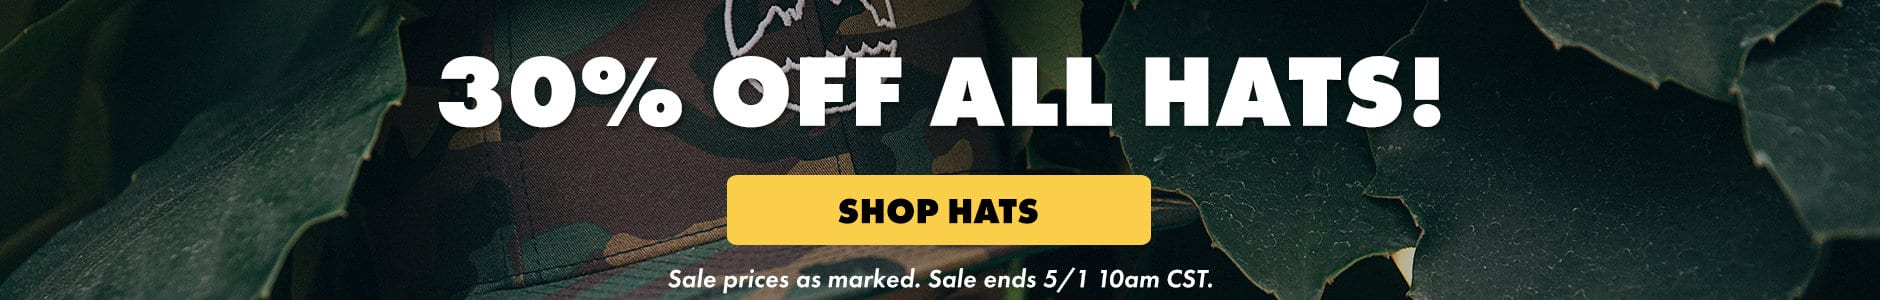 30% off all hats! Shop hats. Sale prices as marked. Sale ends 5/1 10am CST.